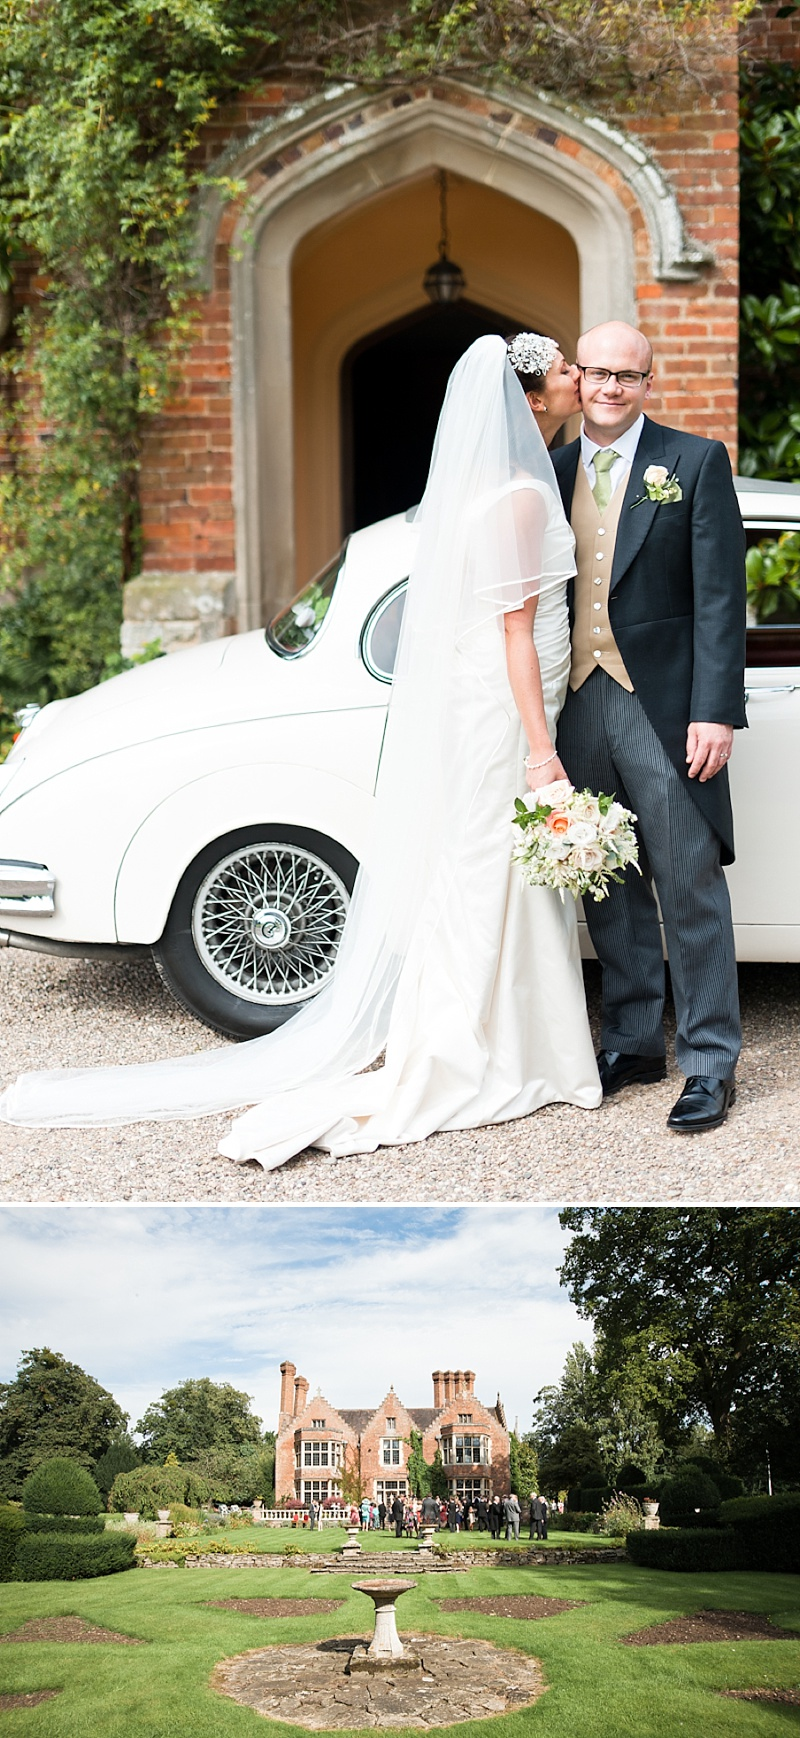 Elegant Wedding In Worcestershire With Vintage Touches Bride In Caroline Castigliano Gown with Rachel Simpson Shoes and a Hermione Harbutt Headpiece, Images by Anushe Low_0006